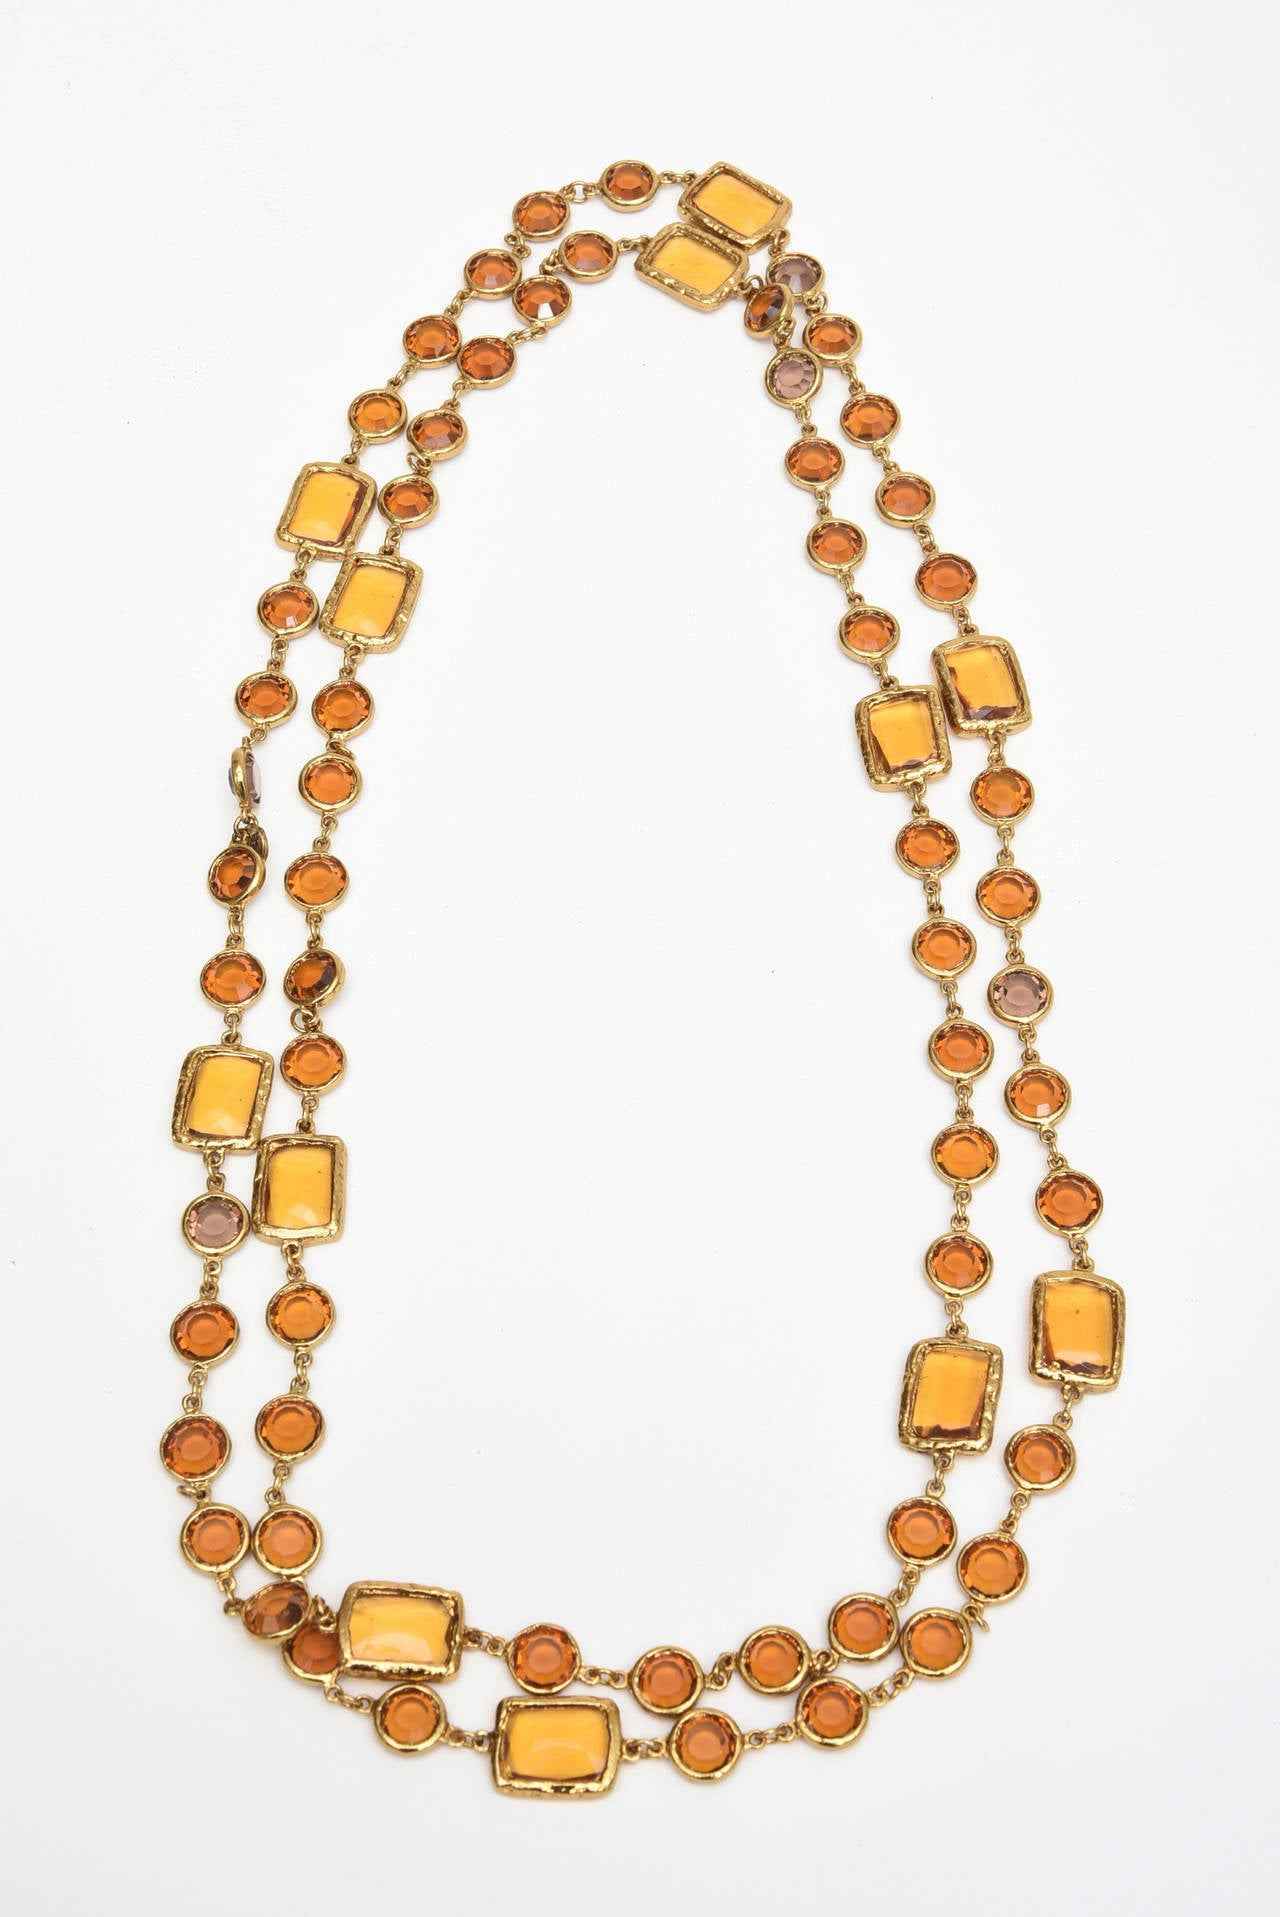 Dark rich amber glass and molted brass are the components to this signed  Chanel chicklet necklace.